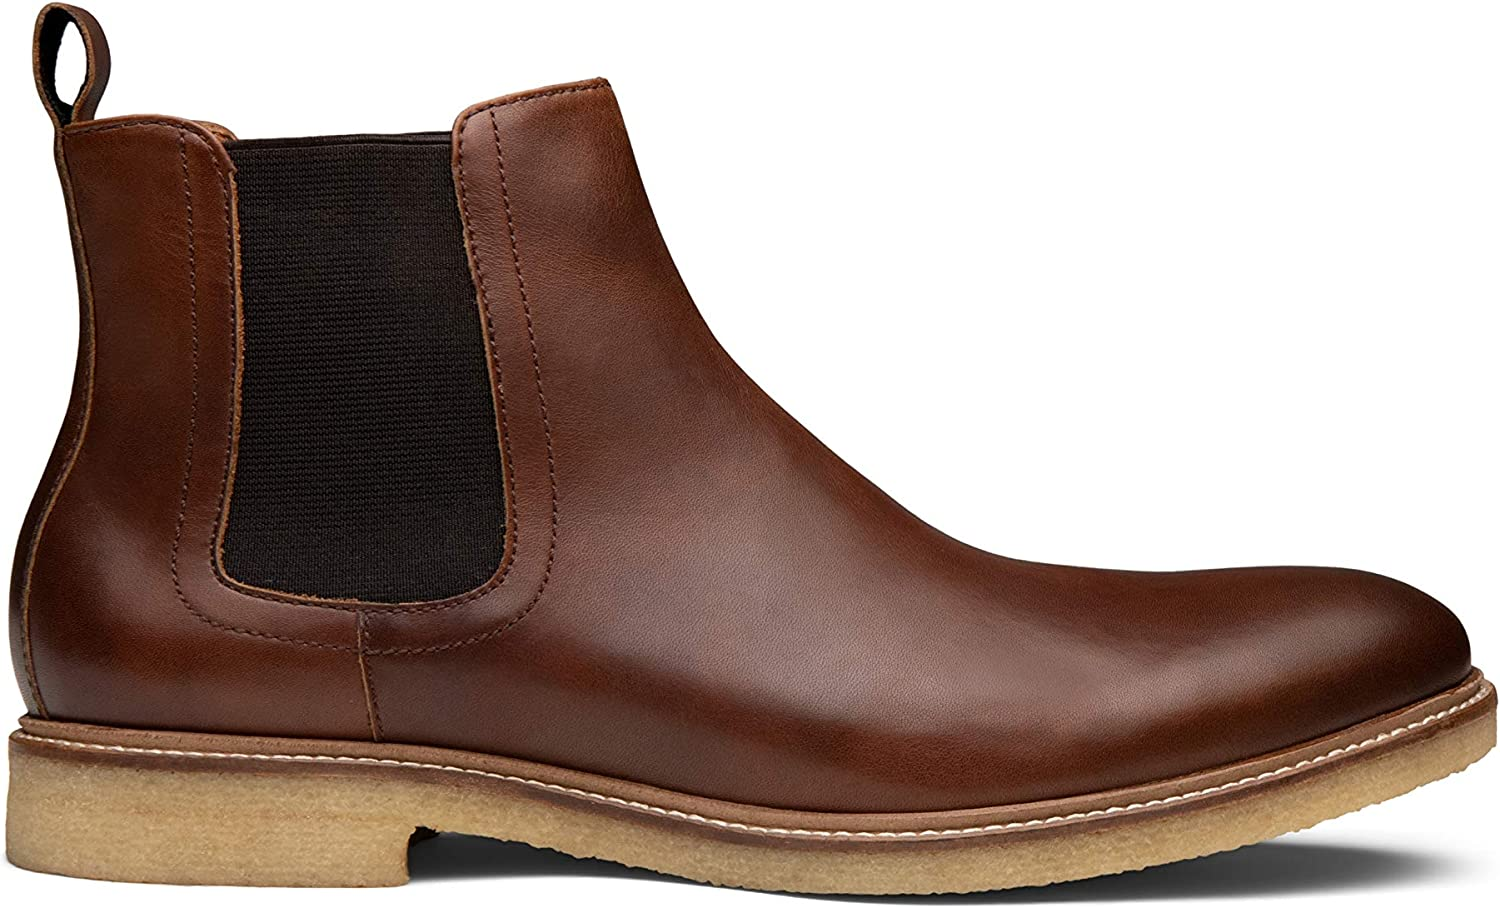 We OFFer at In a popularity cheap prices DUNROSS SONS Men's Leather Dress Boot. Must-Have Boot Chelsesa